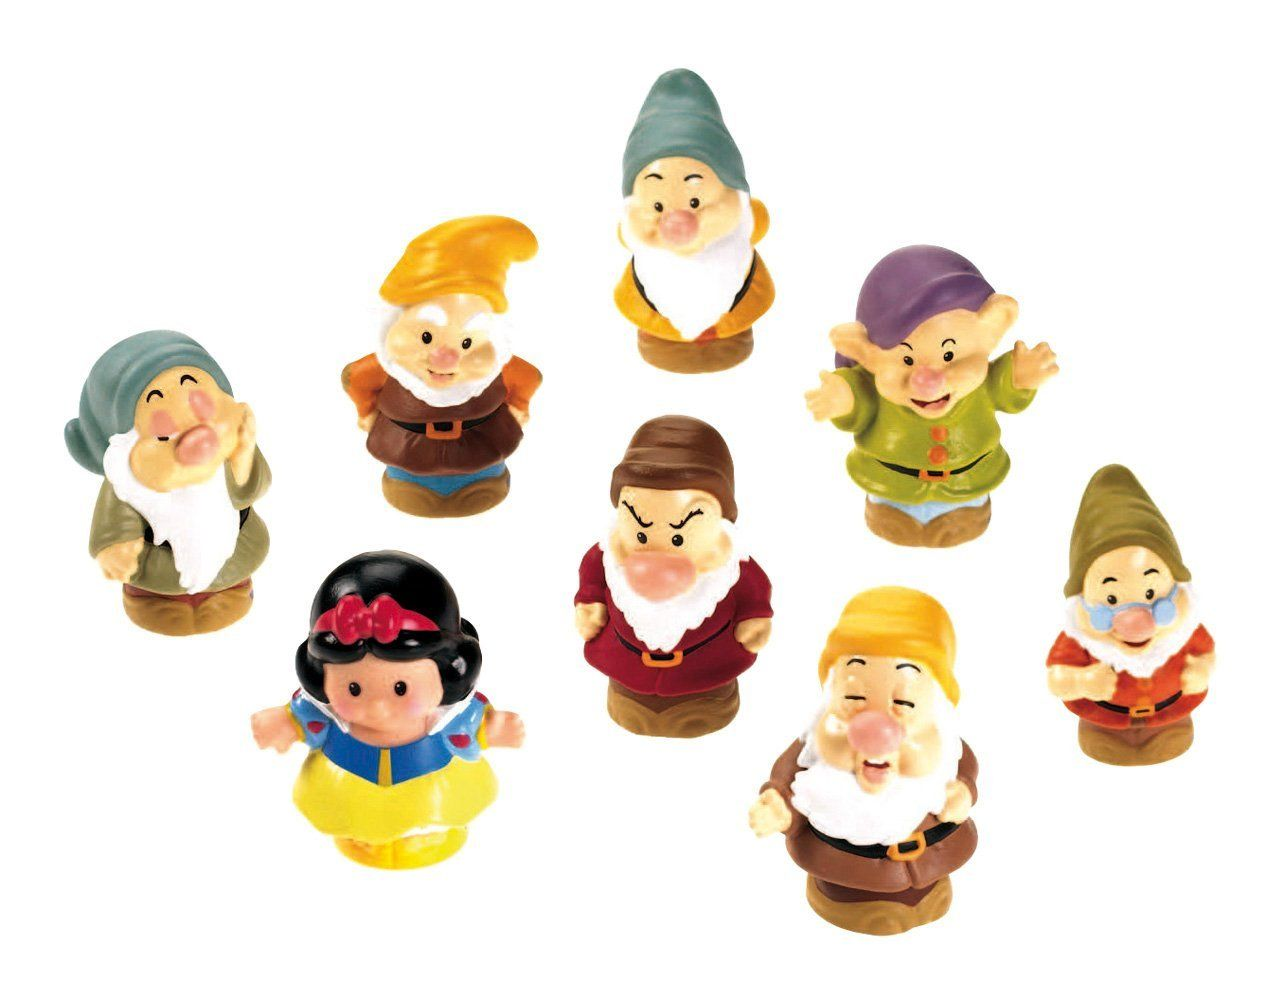 Amazon.com: Fisher Price Little People Snow White & The Seven Dwarfs: Toys & Games